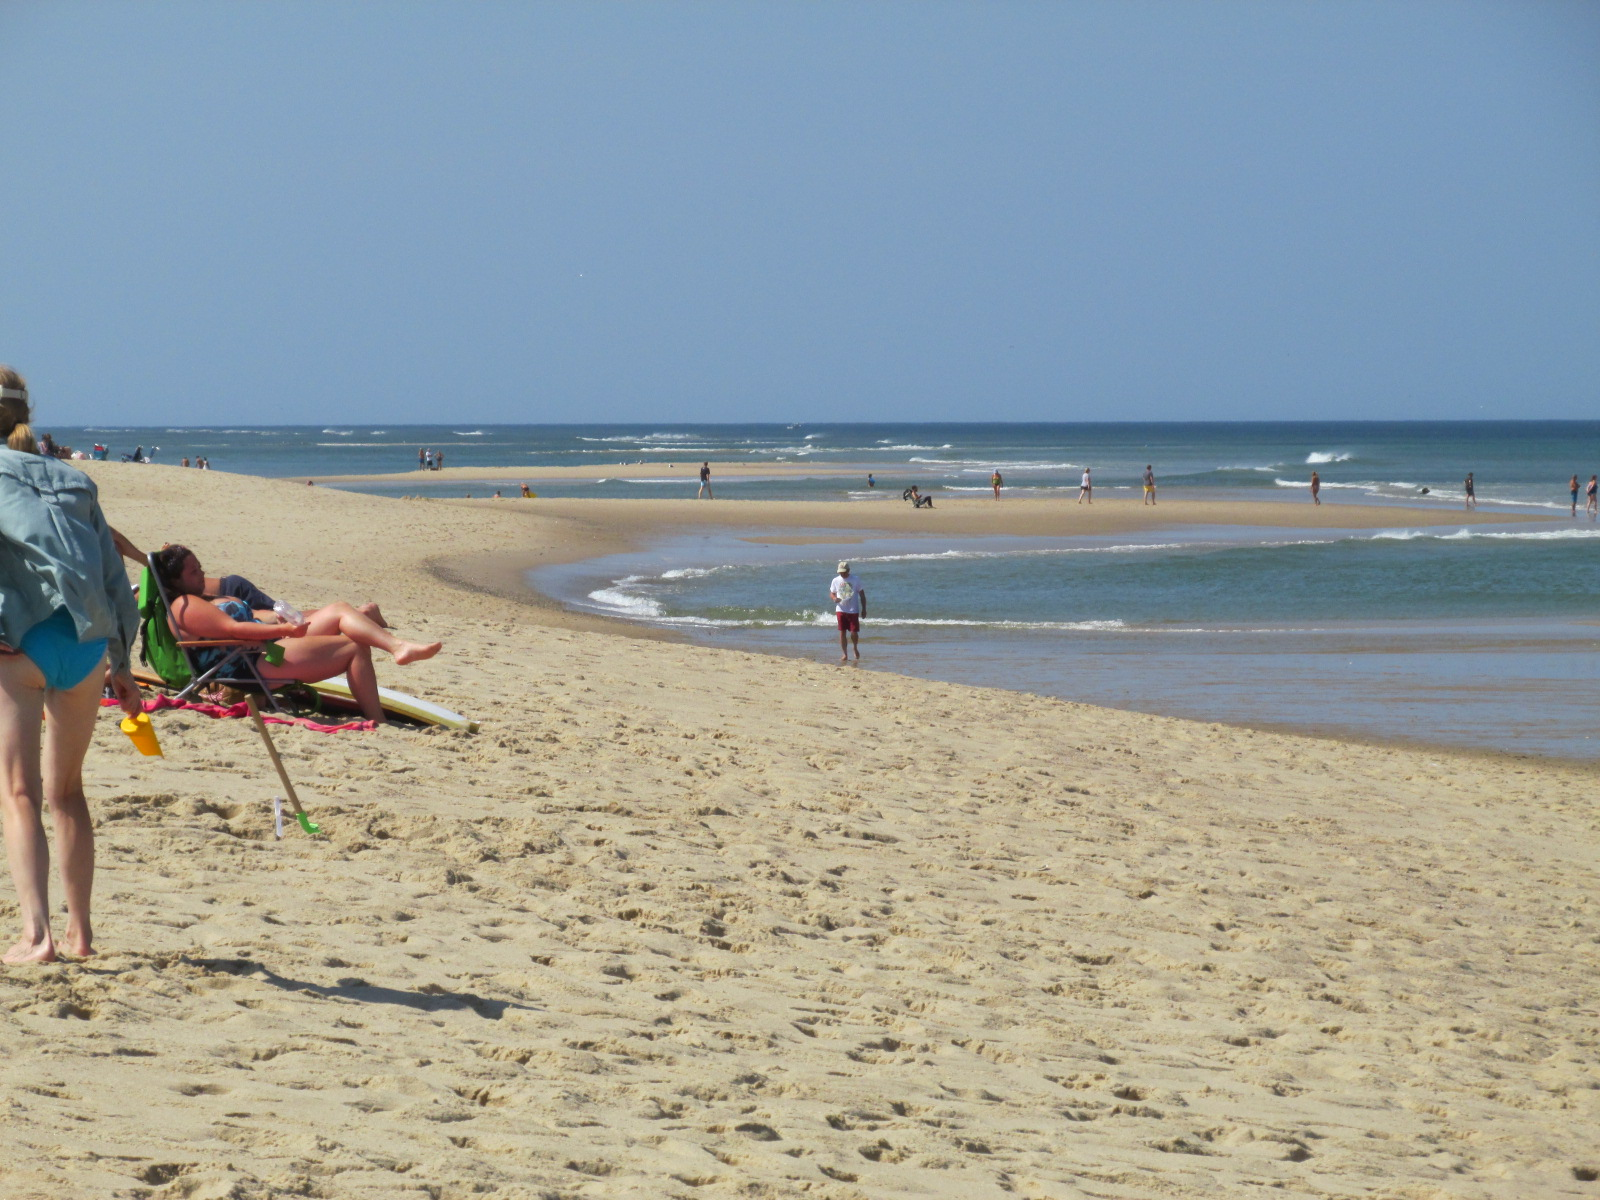 Head Of The Meadow Beach, Cape Cod National Seashore